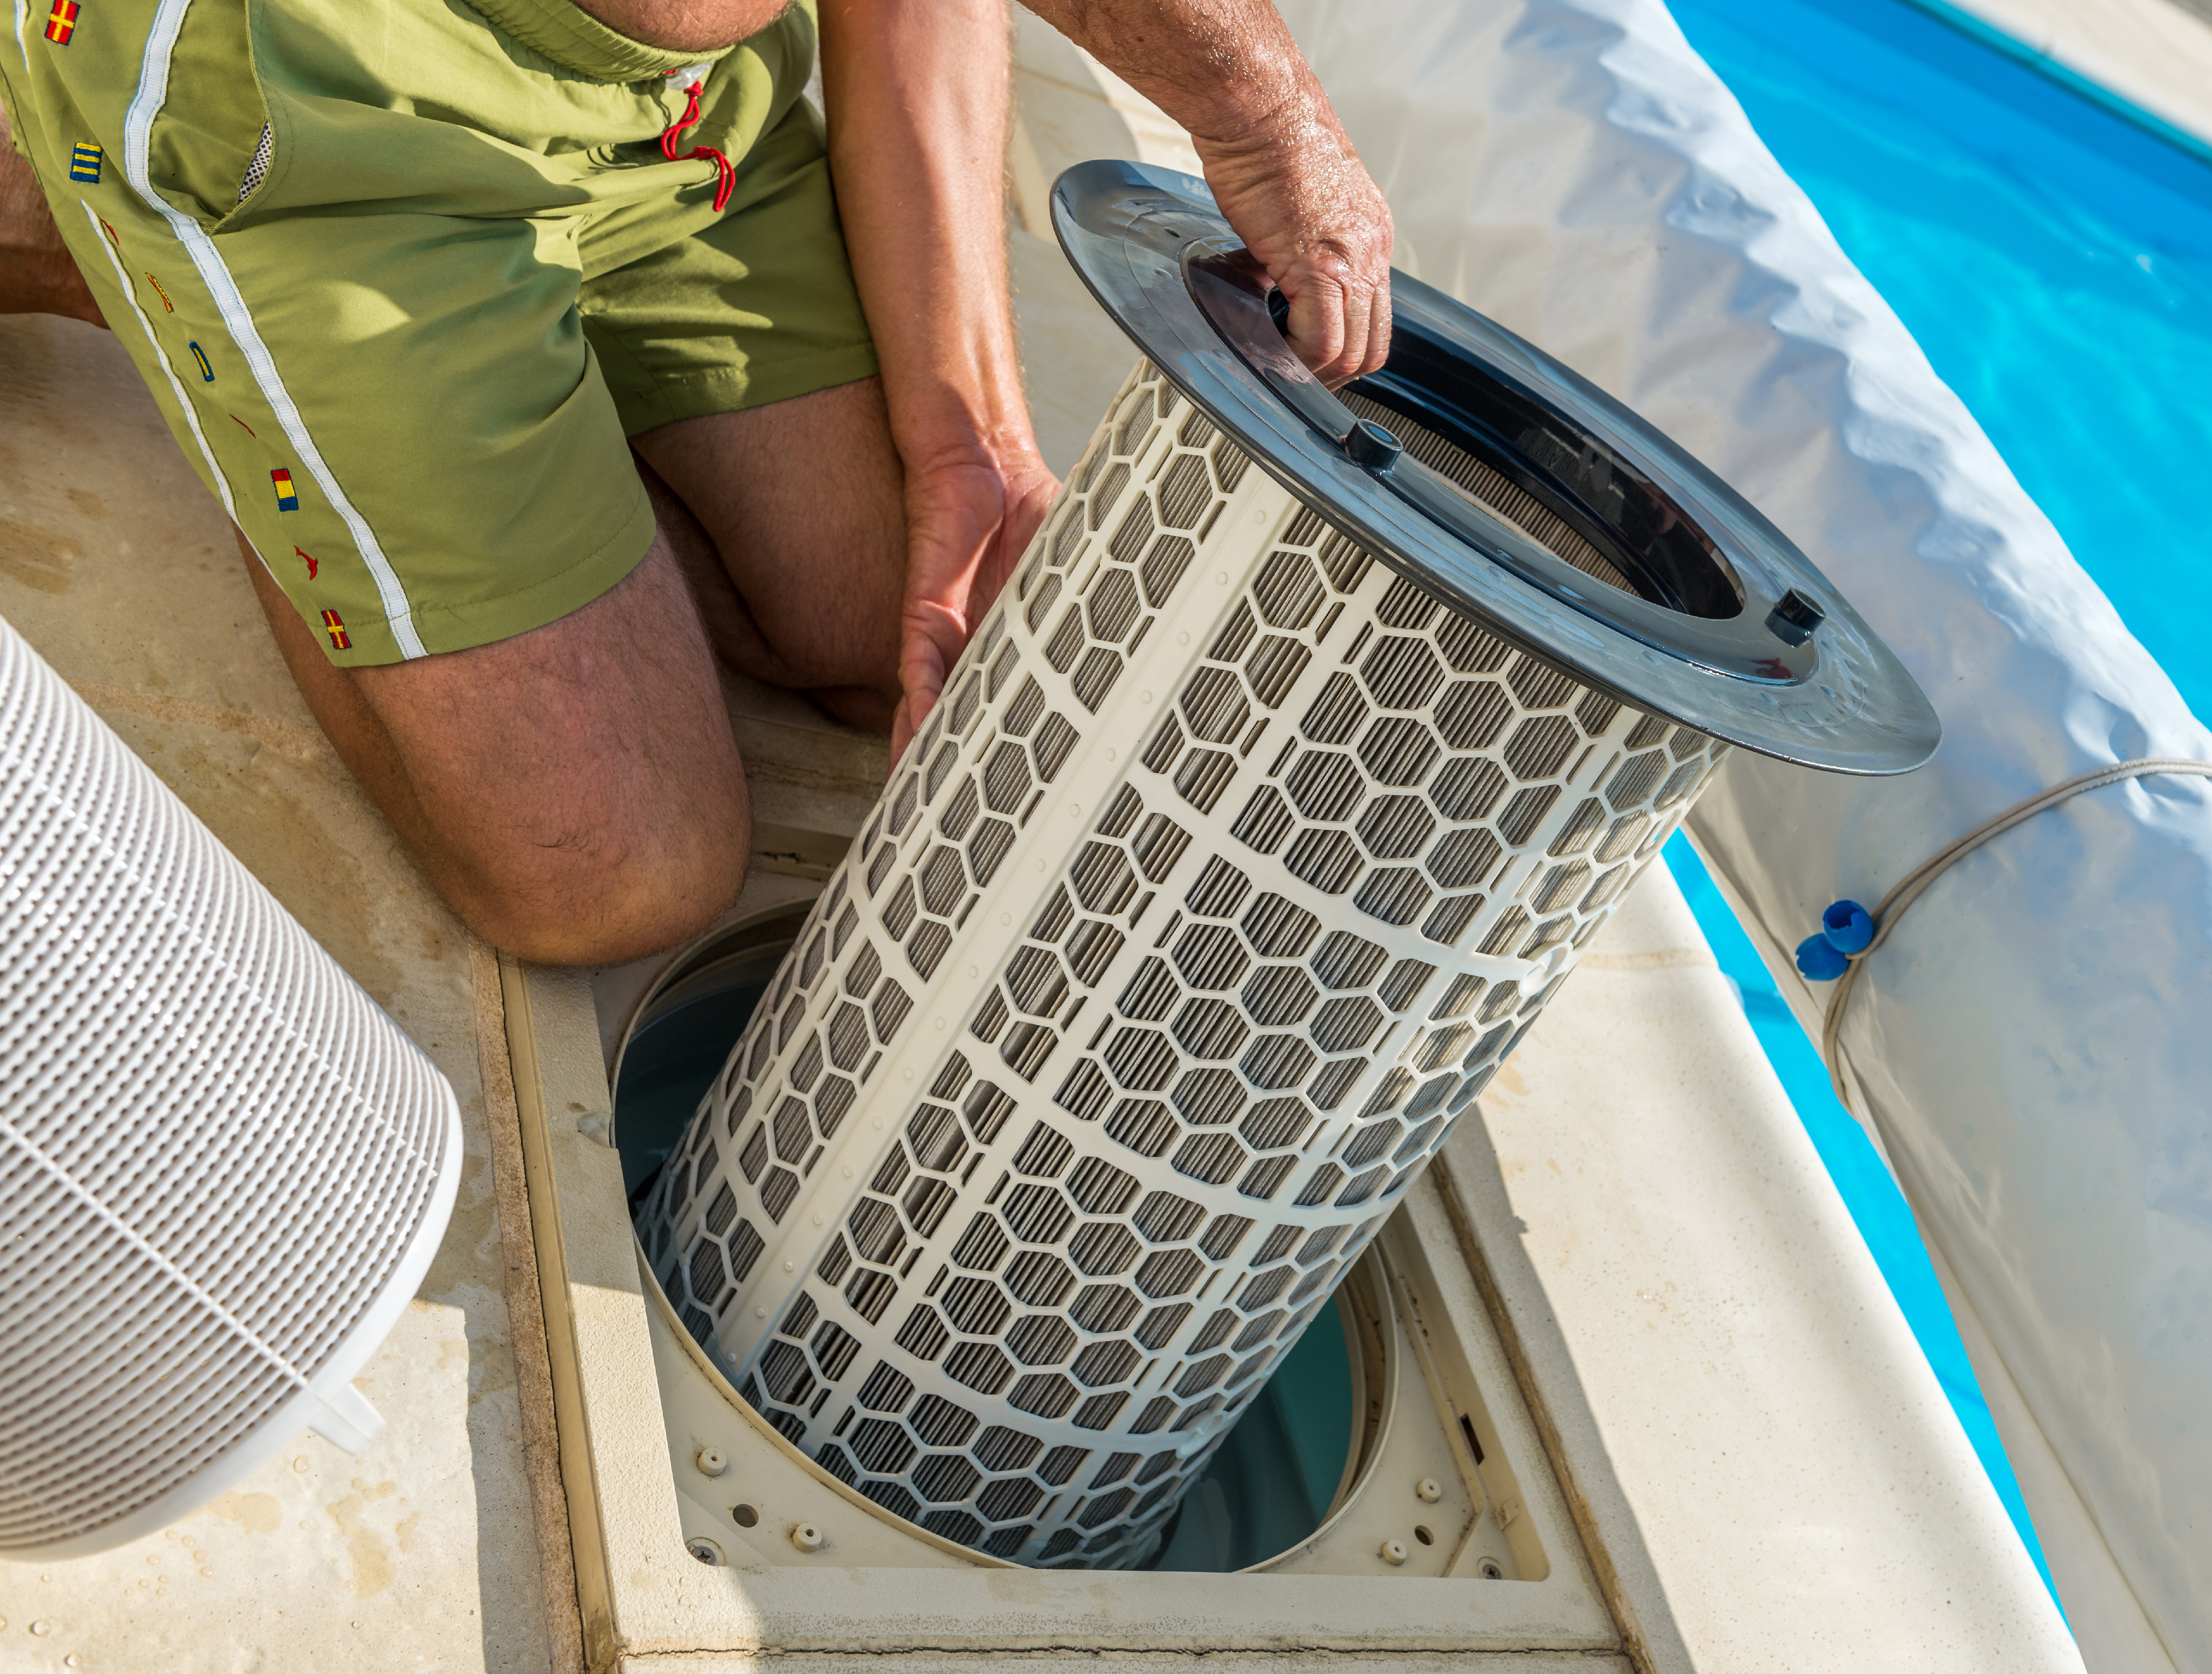 Swimming pool filter system highly reliable warranted for Koi filtration